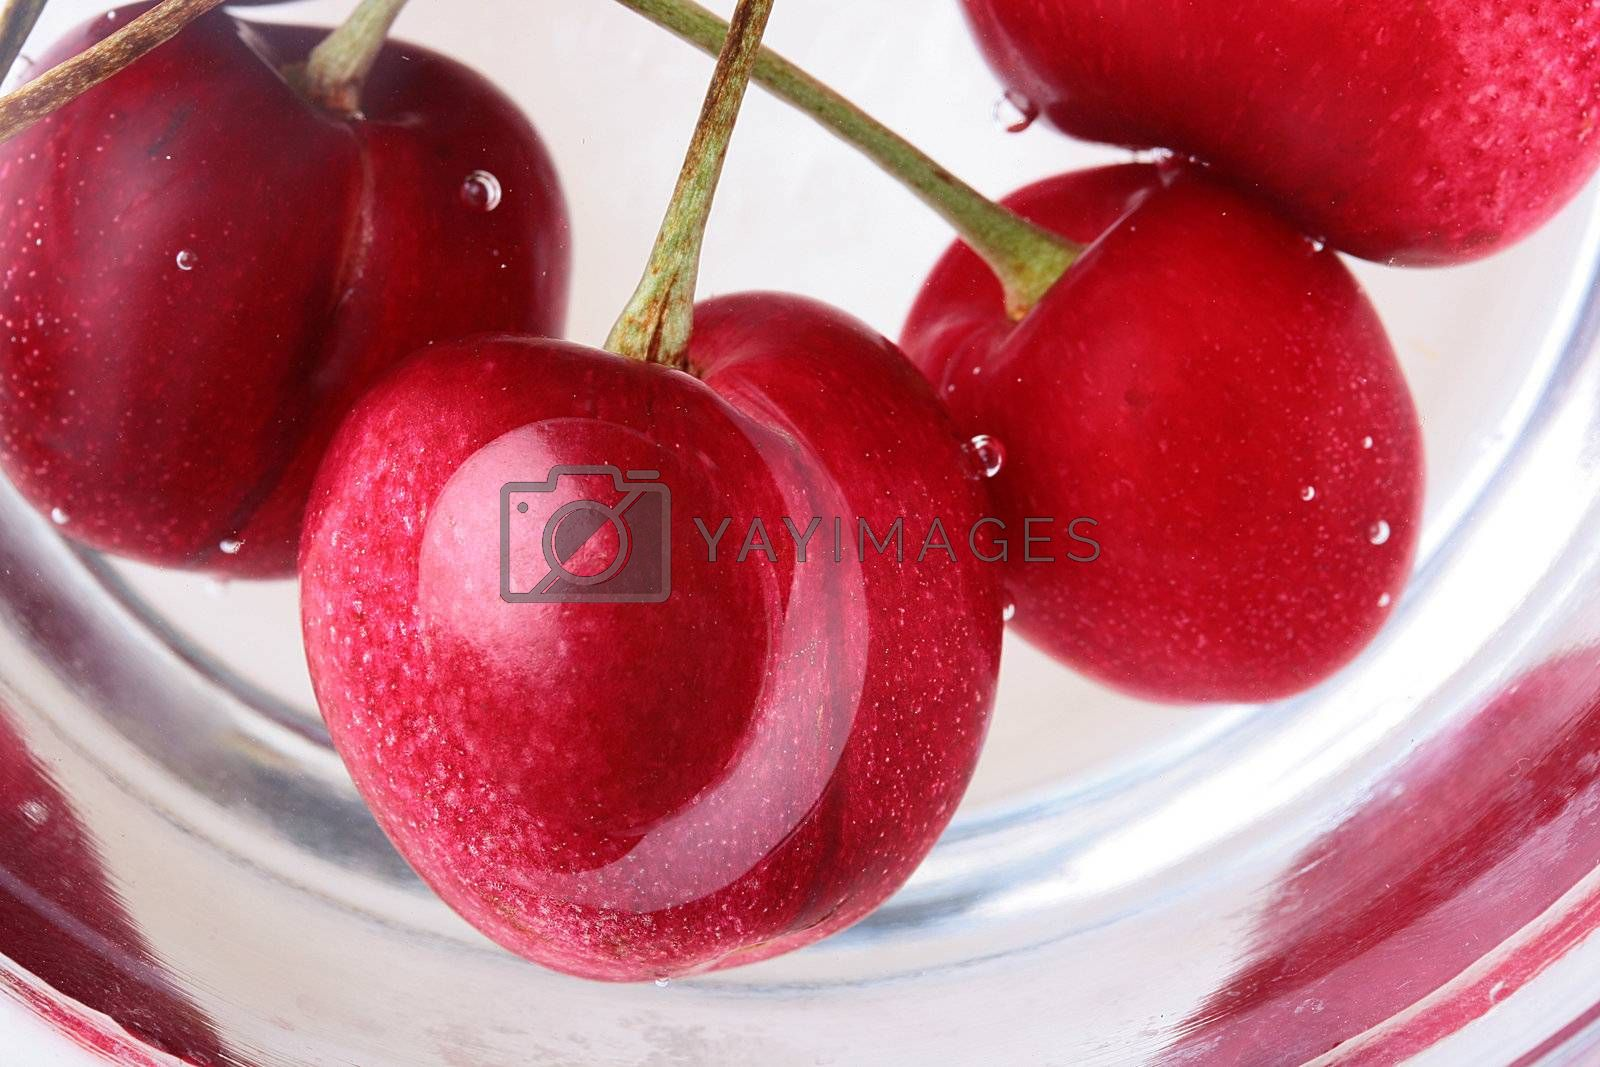 Royalty free image of Red cherries by VIPDesignUSA